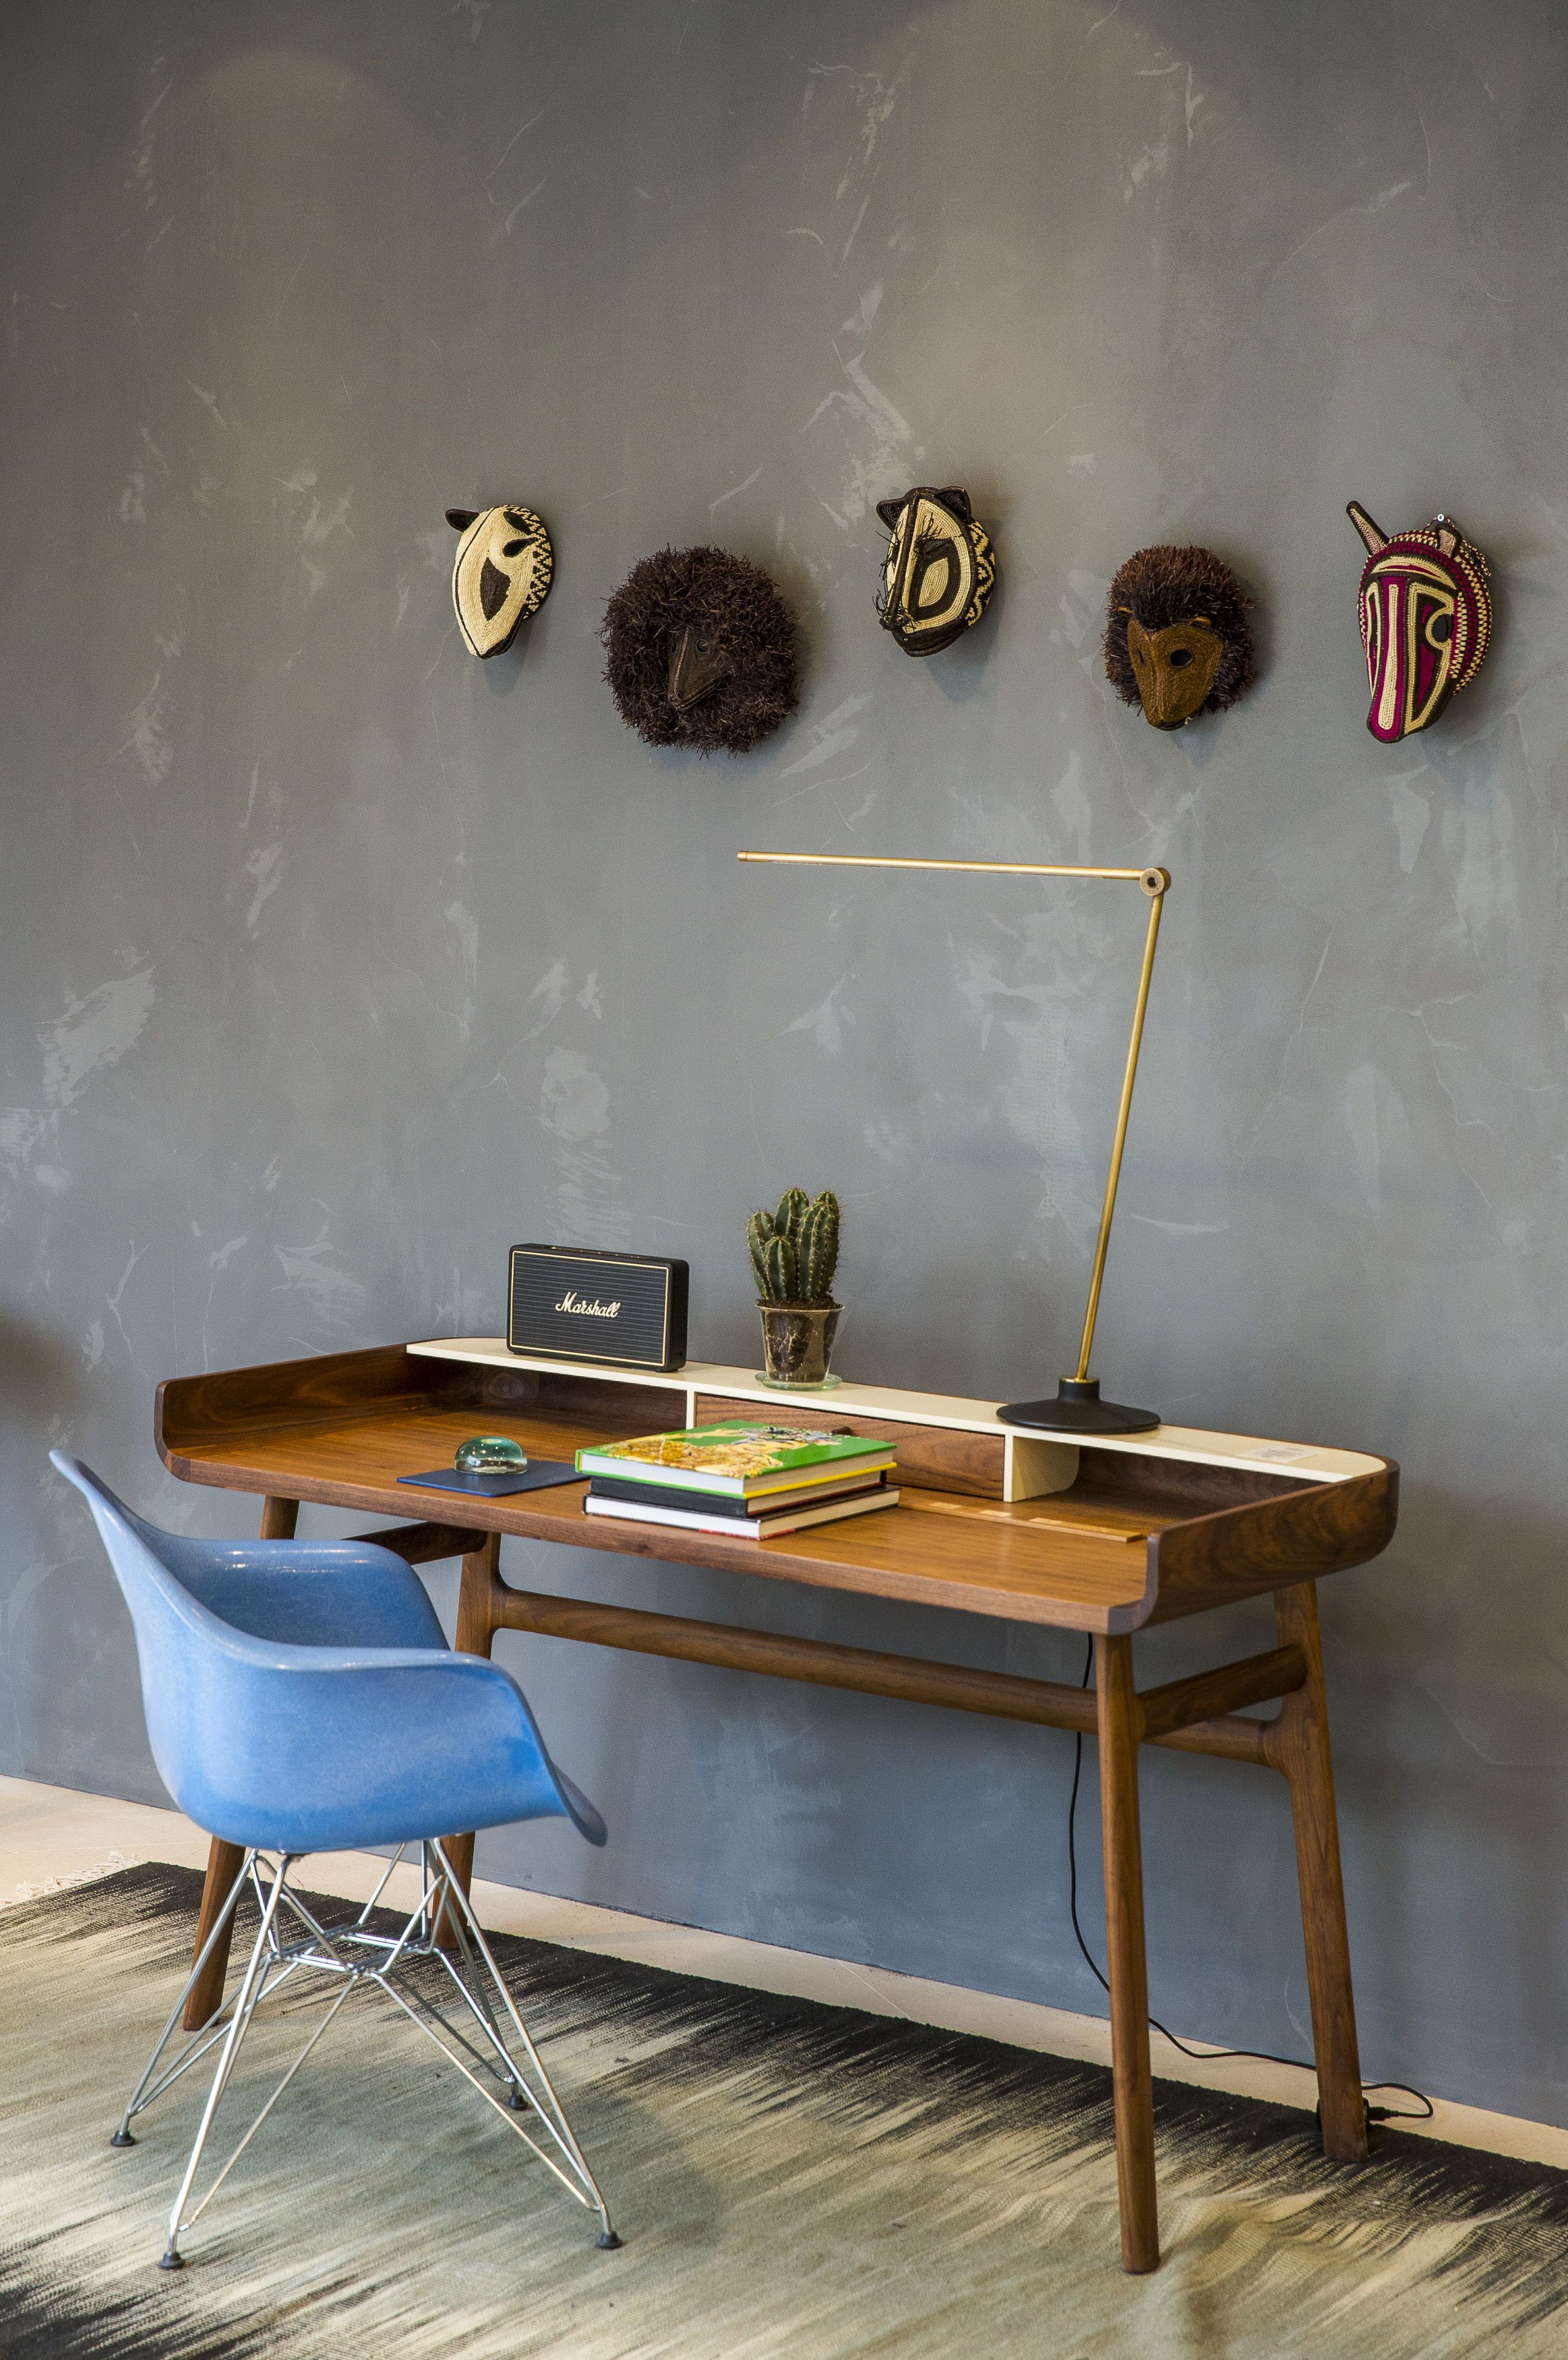 Harold Desk By Nichetto On Display At The Conran Shop Interiors  # Muebles Bobrick